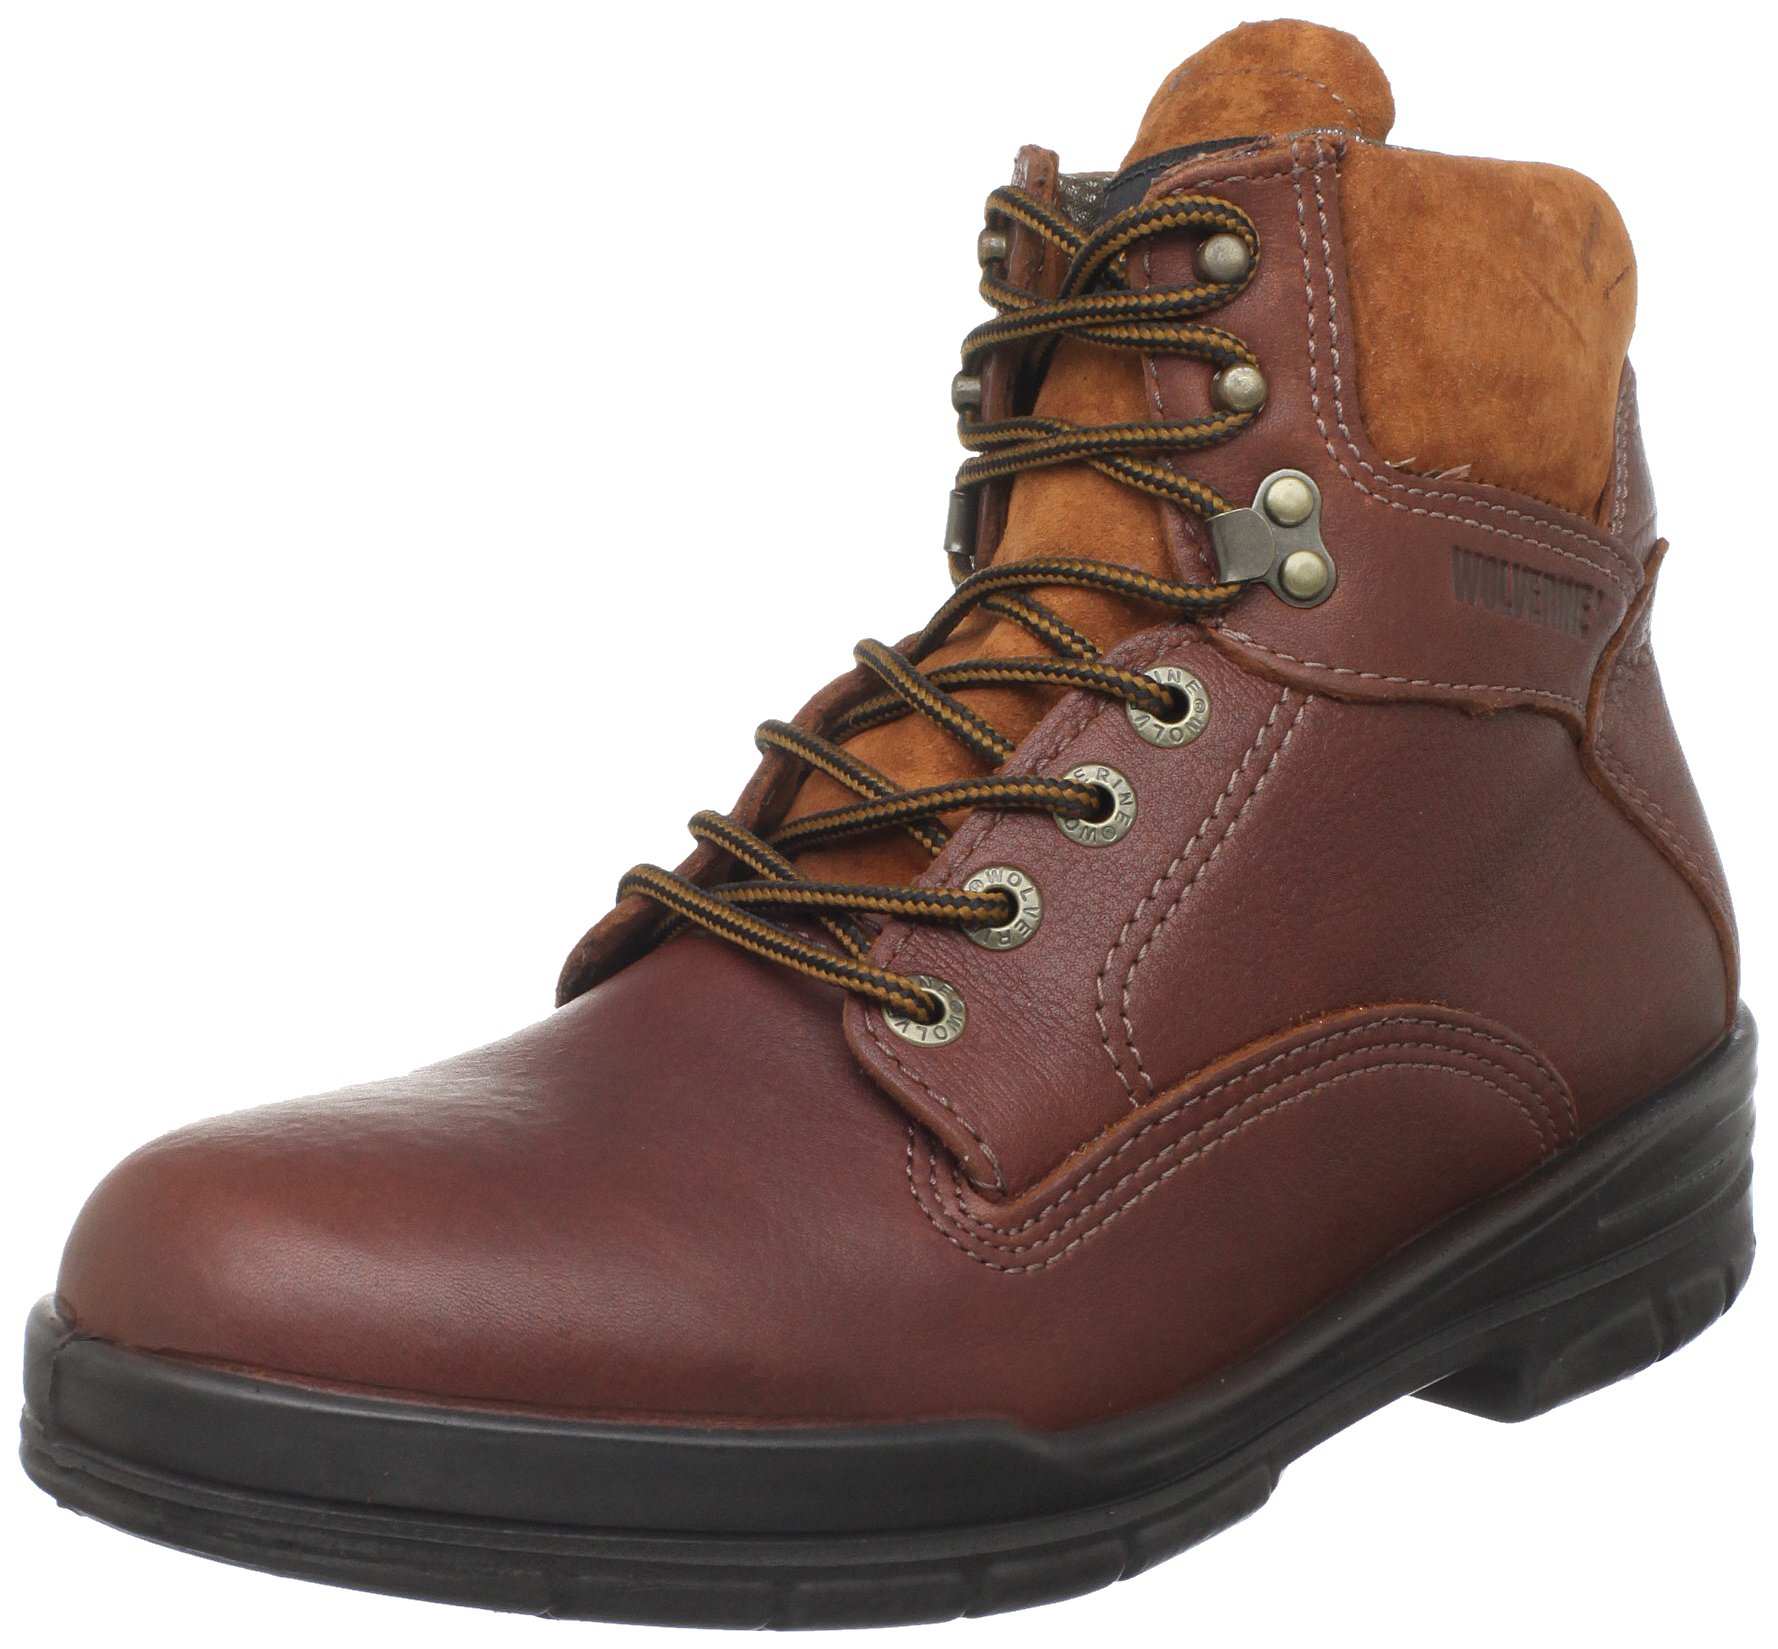 Wolverine Men's W03122 Durashock SR Boot, Brown, 10.5 M US